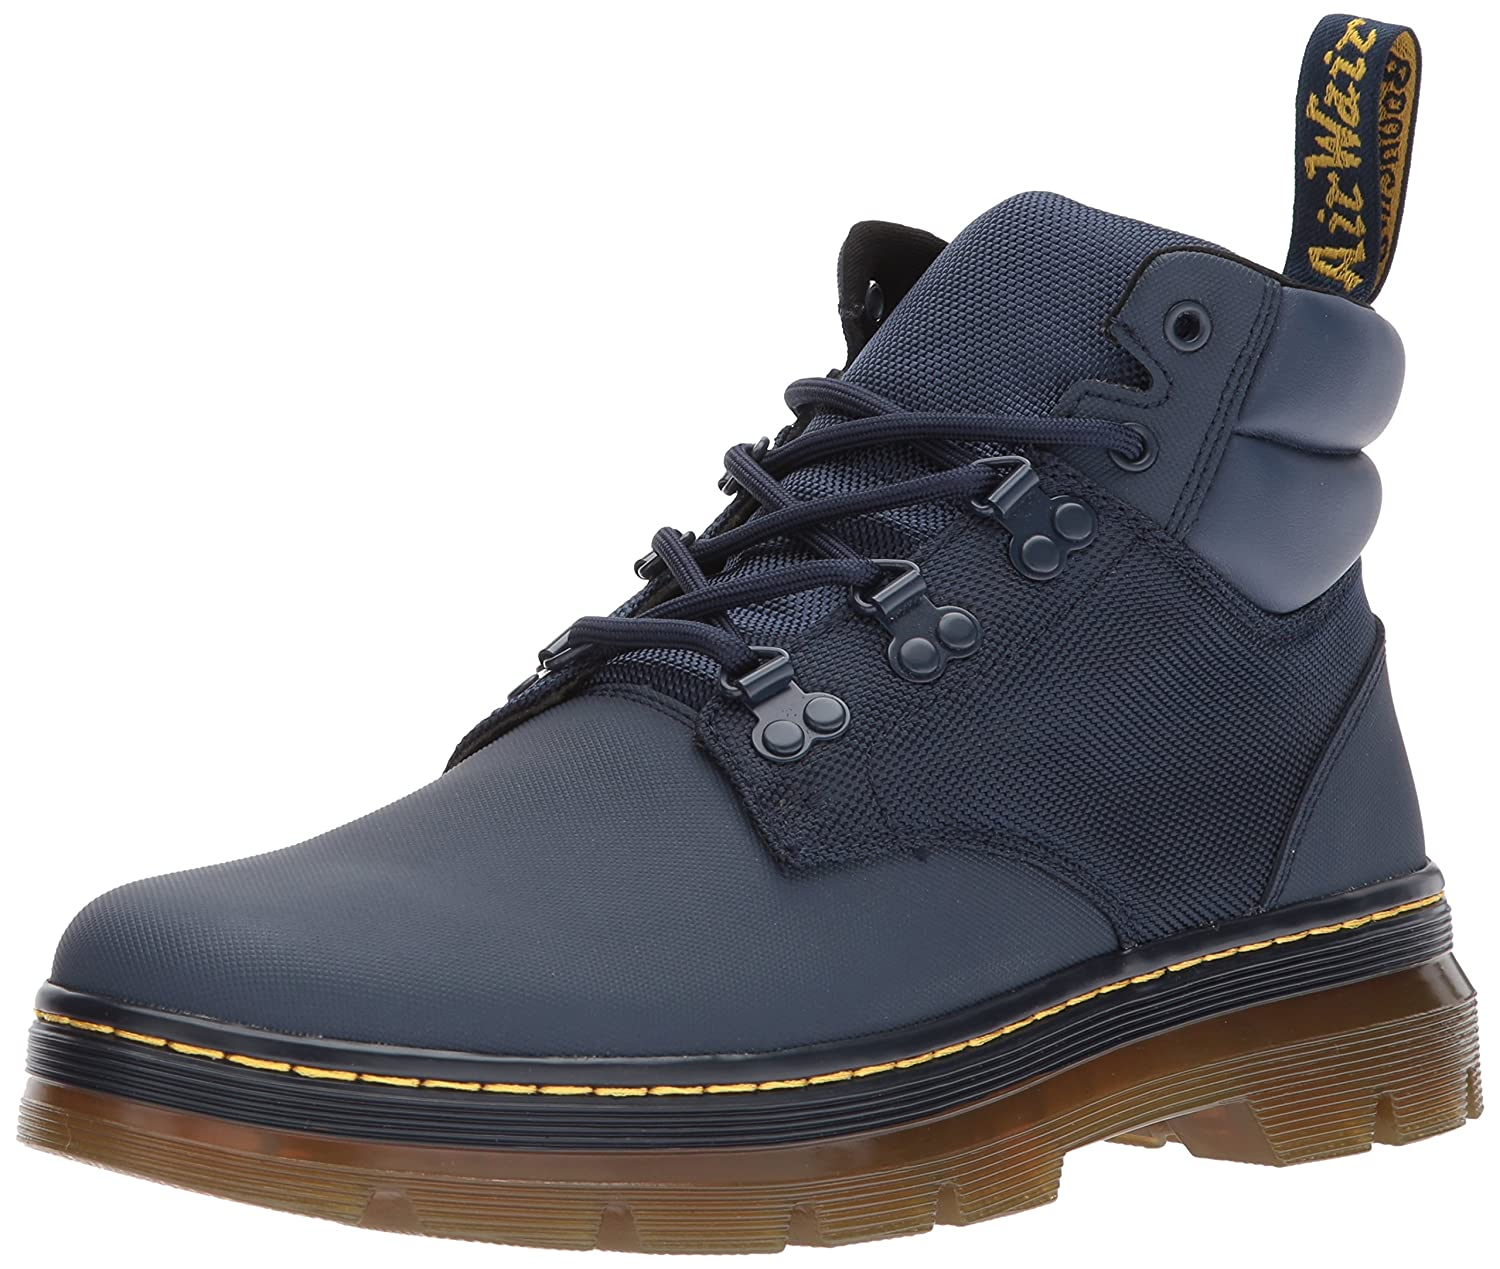 Dr. Martens Rakim Ankle Boot B01N26CSN2 6 Medium UK (US Men's 7, women's 8 US)|Indigo